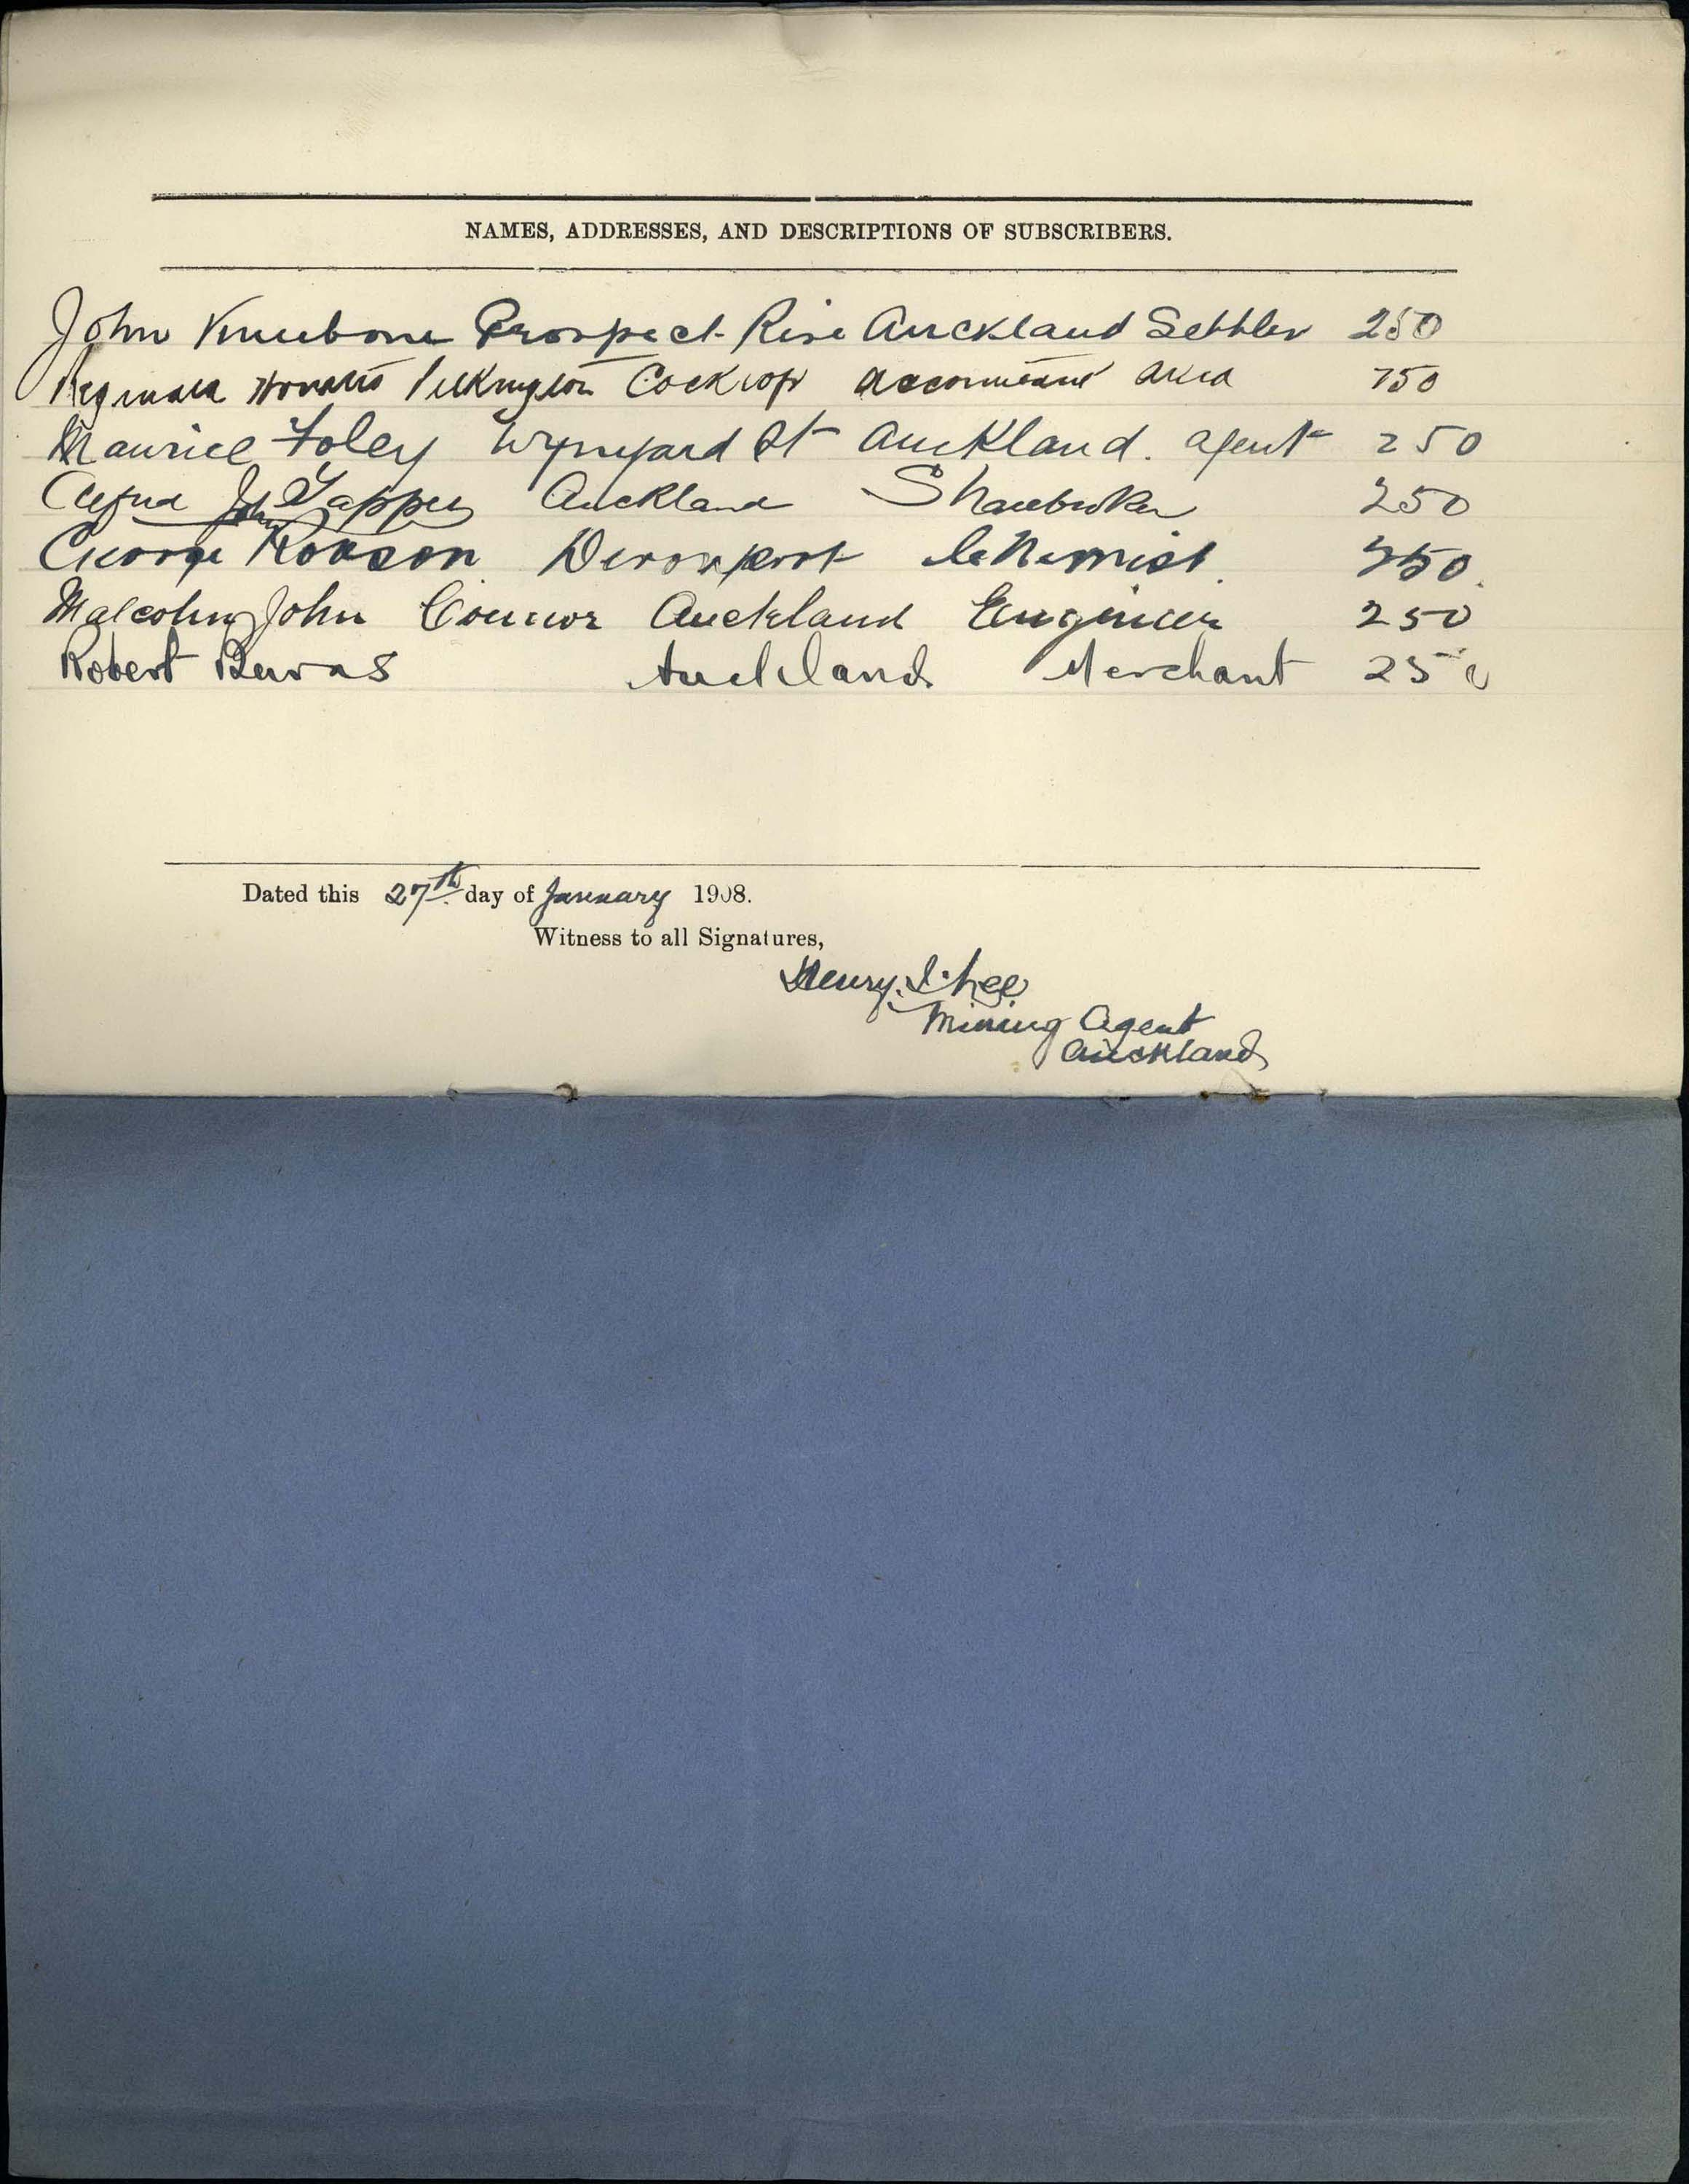 Handwritten excerpt from company registration file